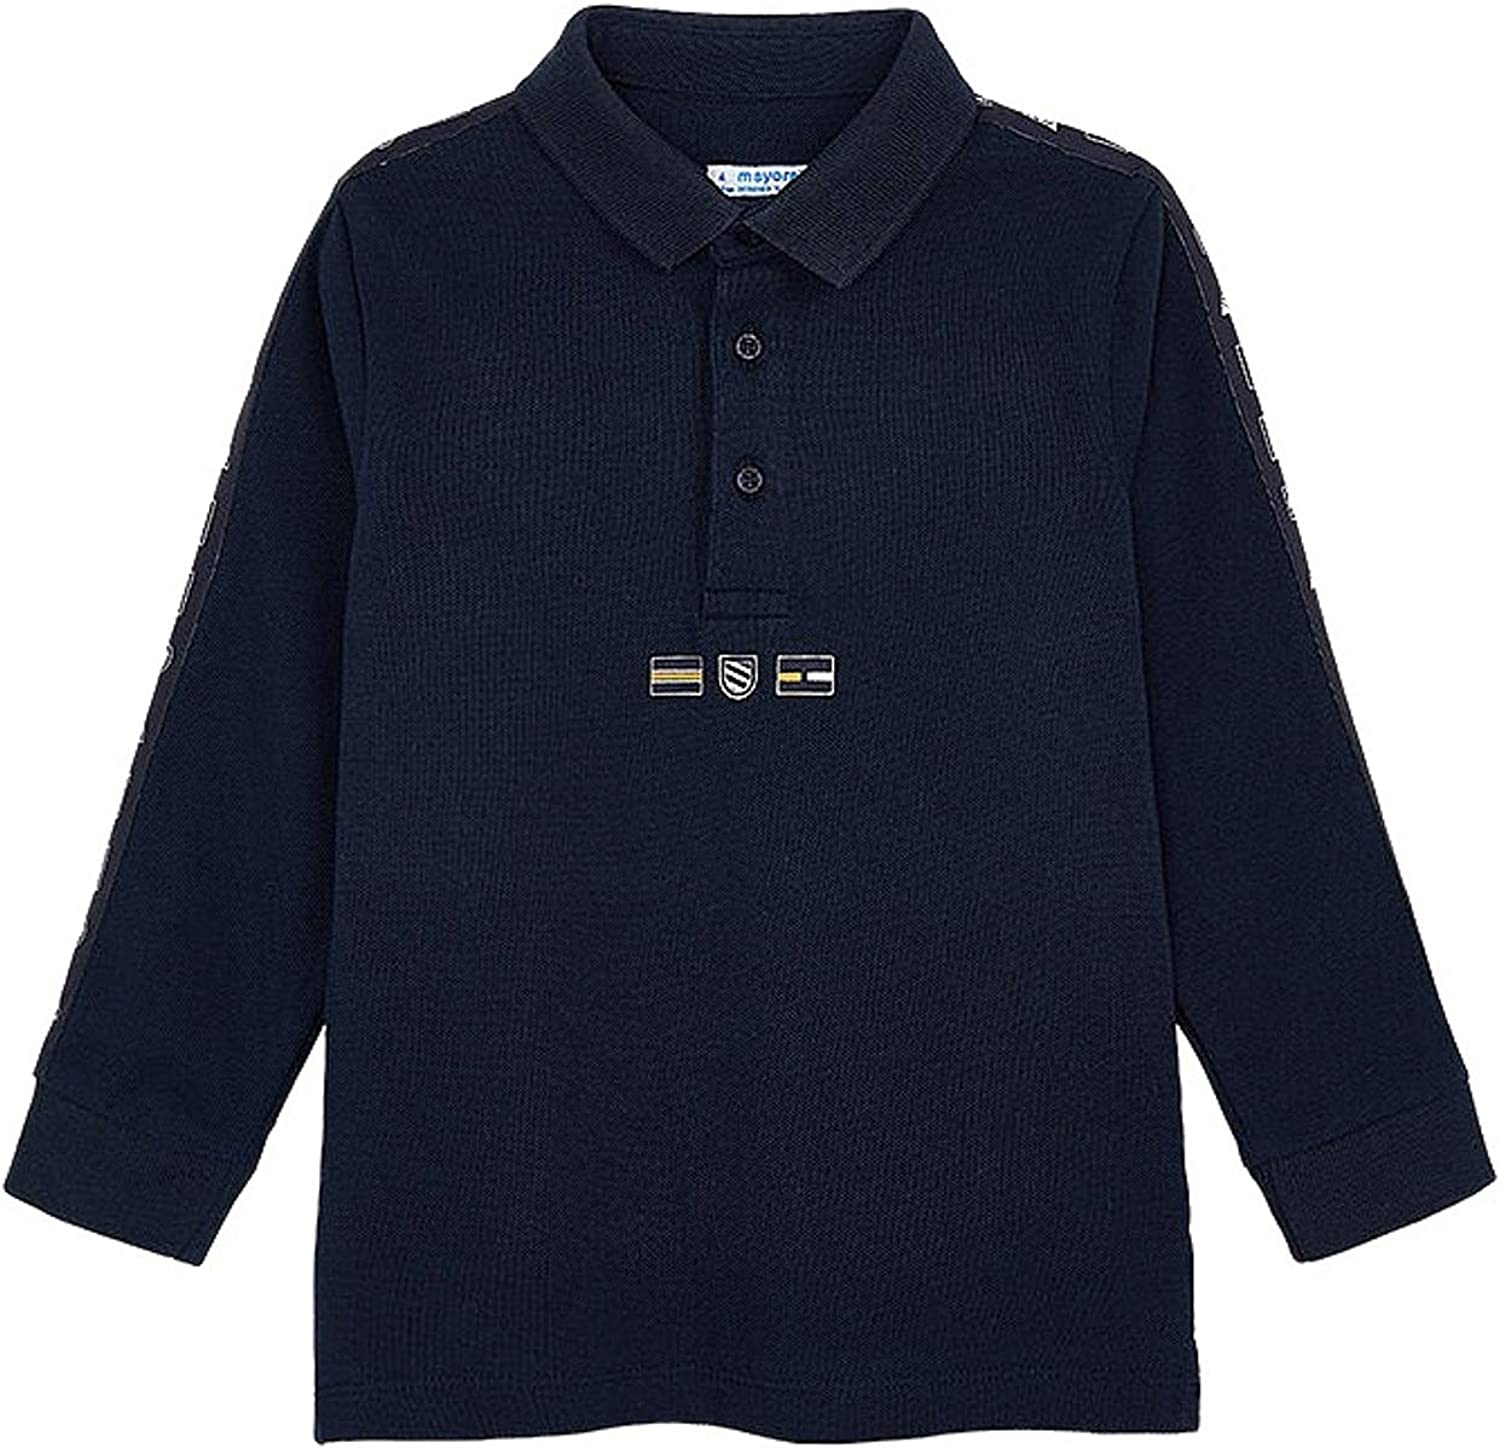 Mayoral - Polo L/s for Boys - 4130, Ocean